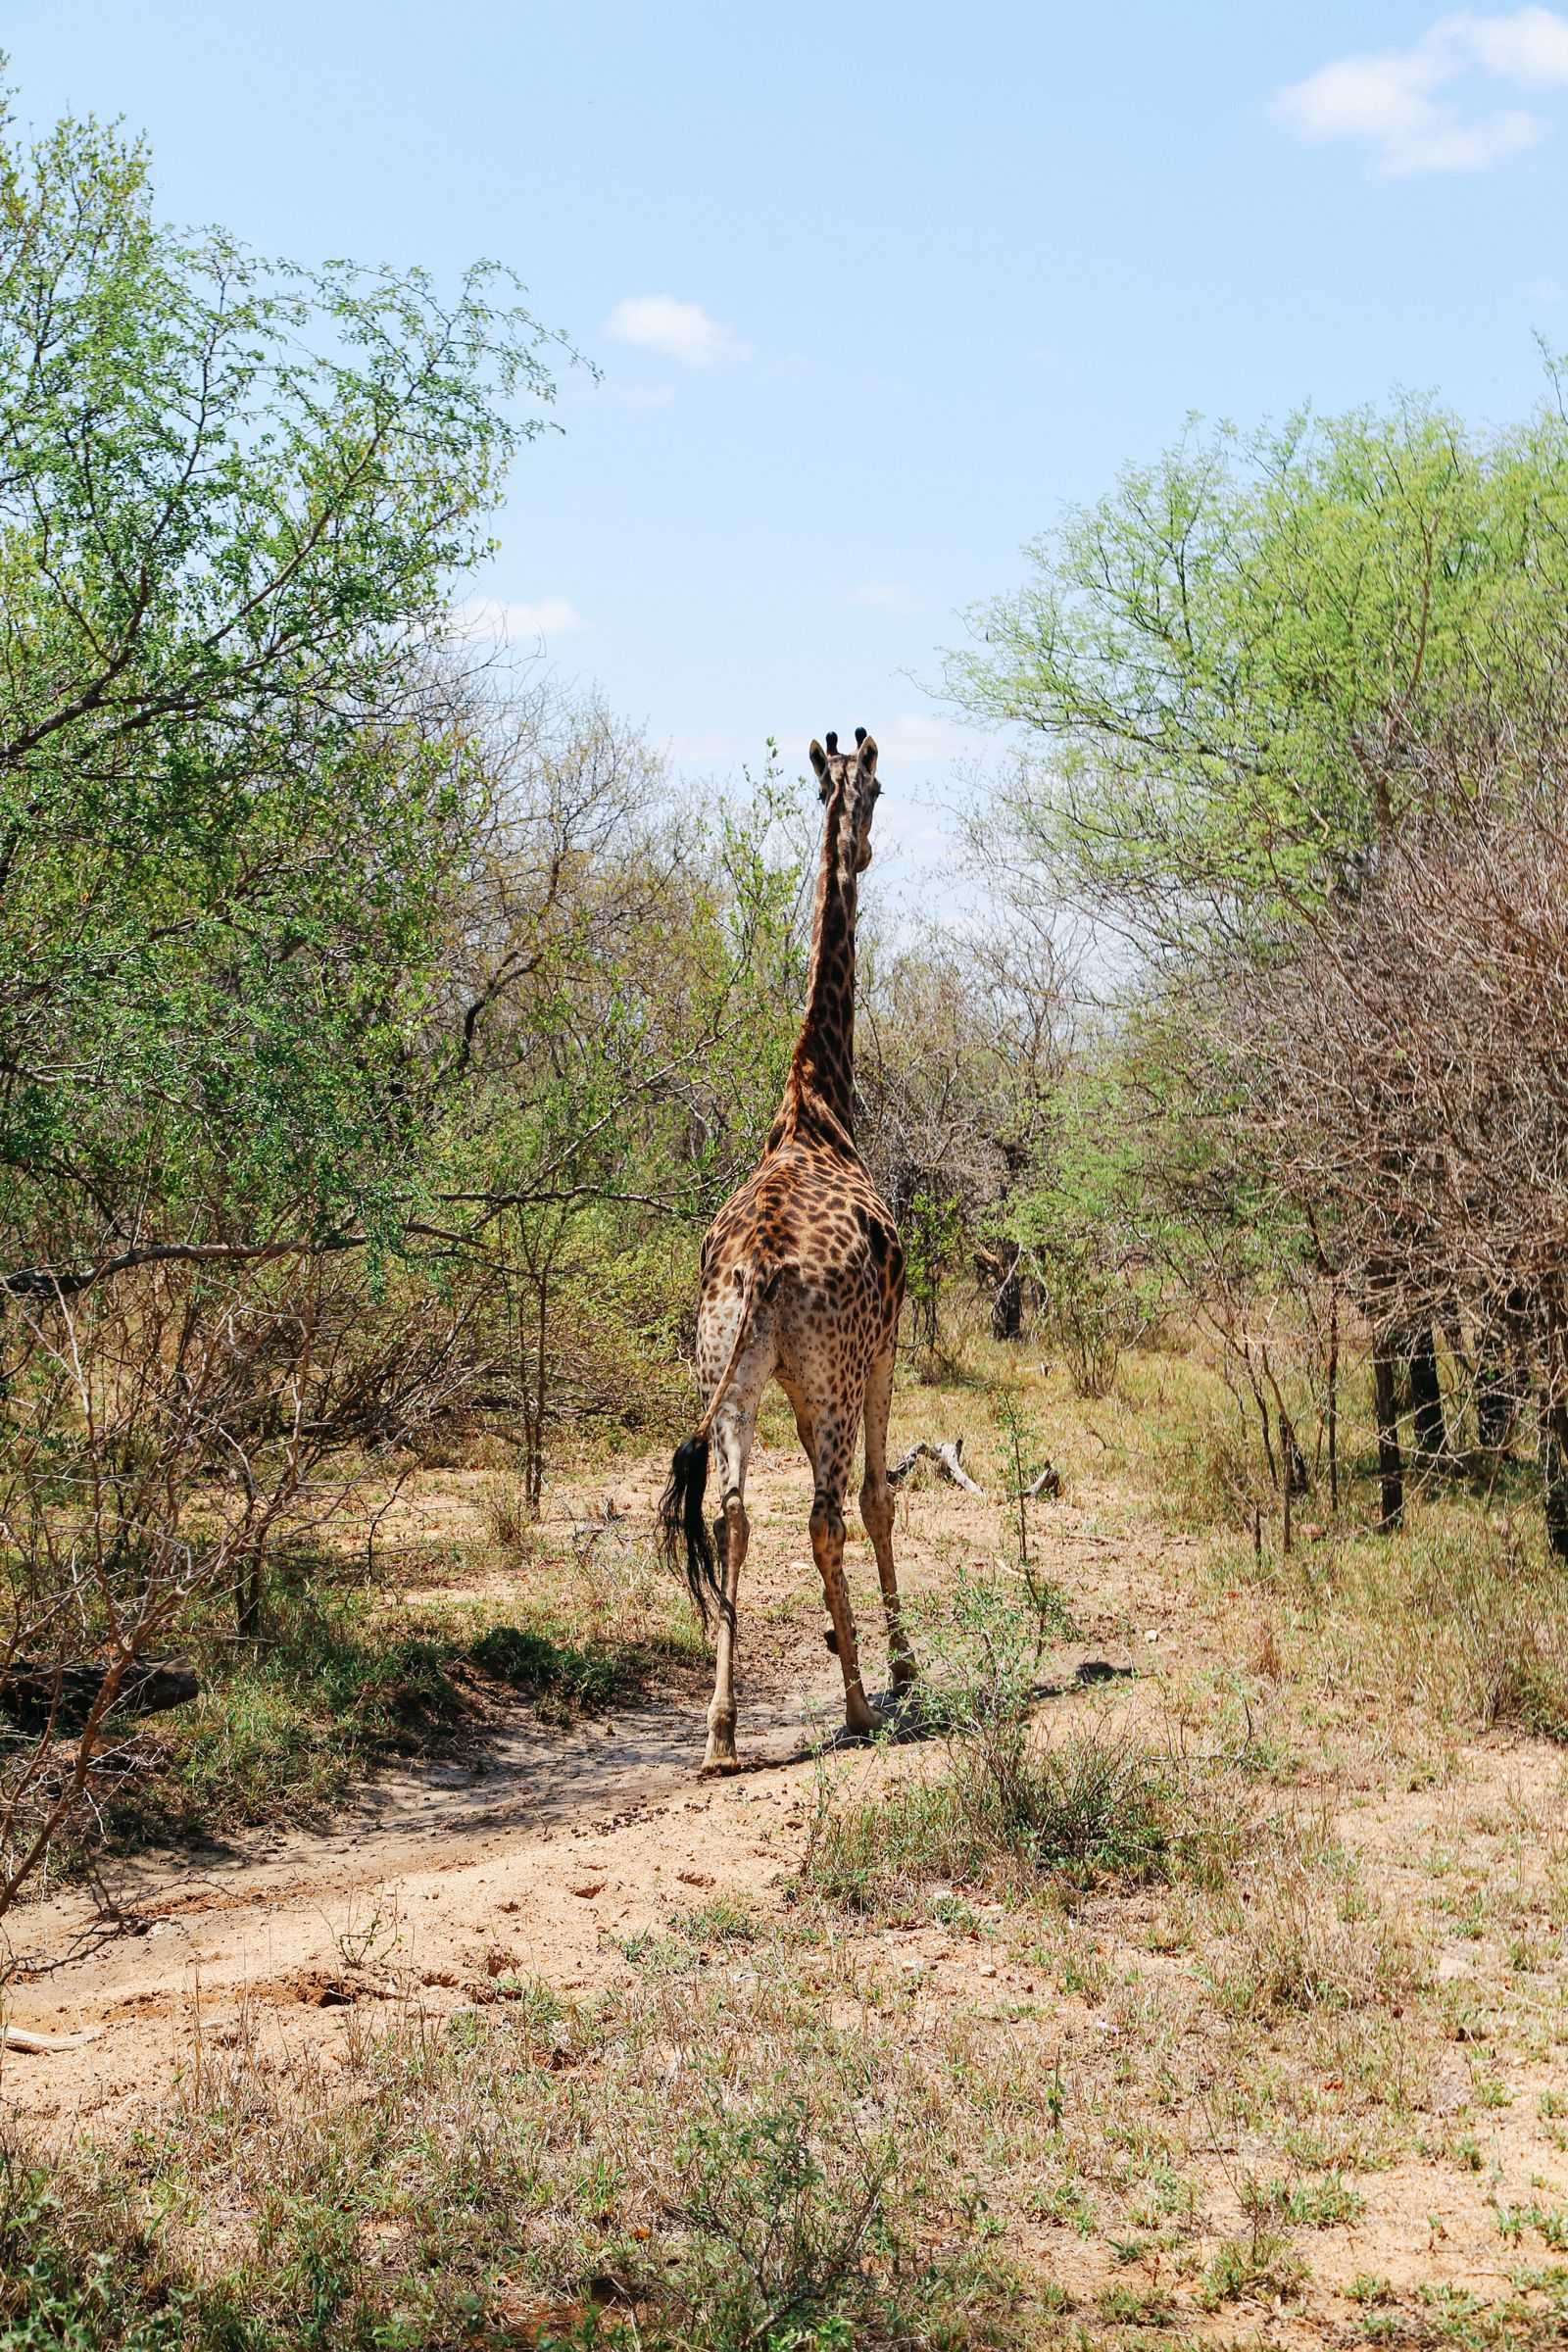 Arriving On Safari In South Africa... (Definitely Not Your Average Airport Transfer!) (18)